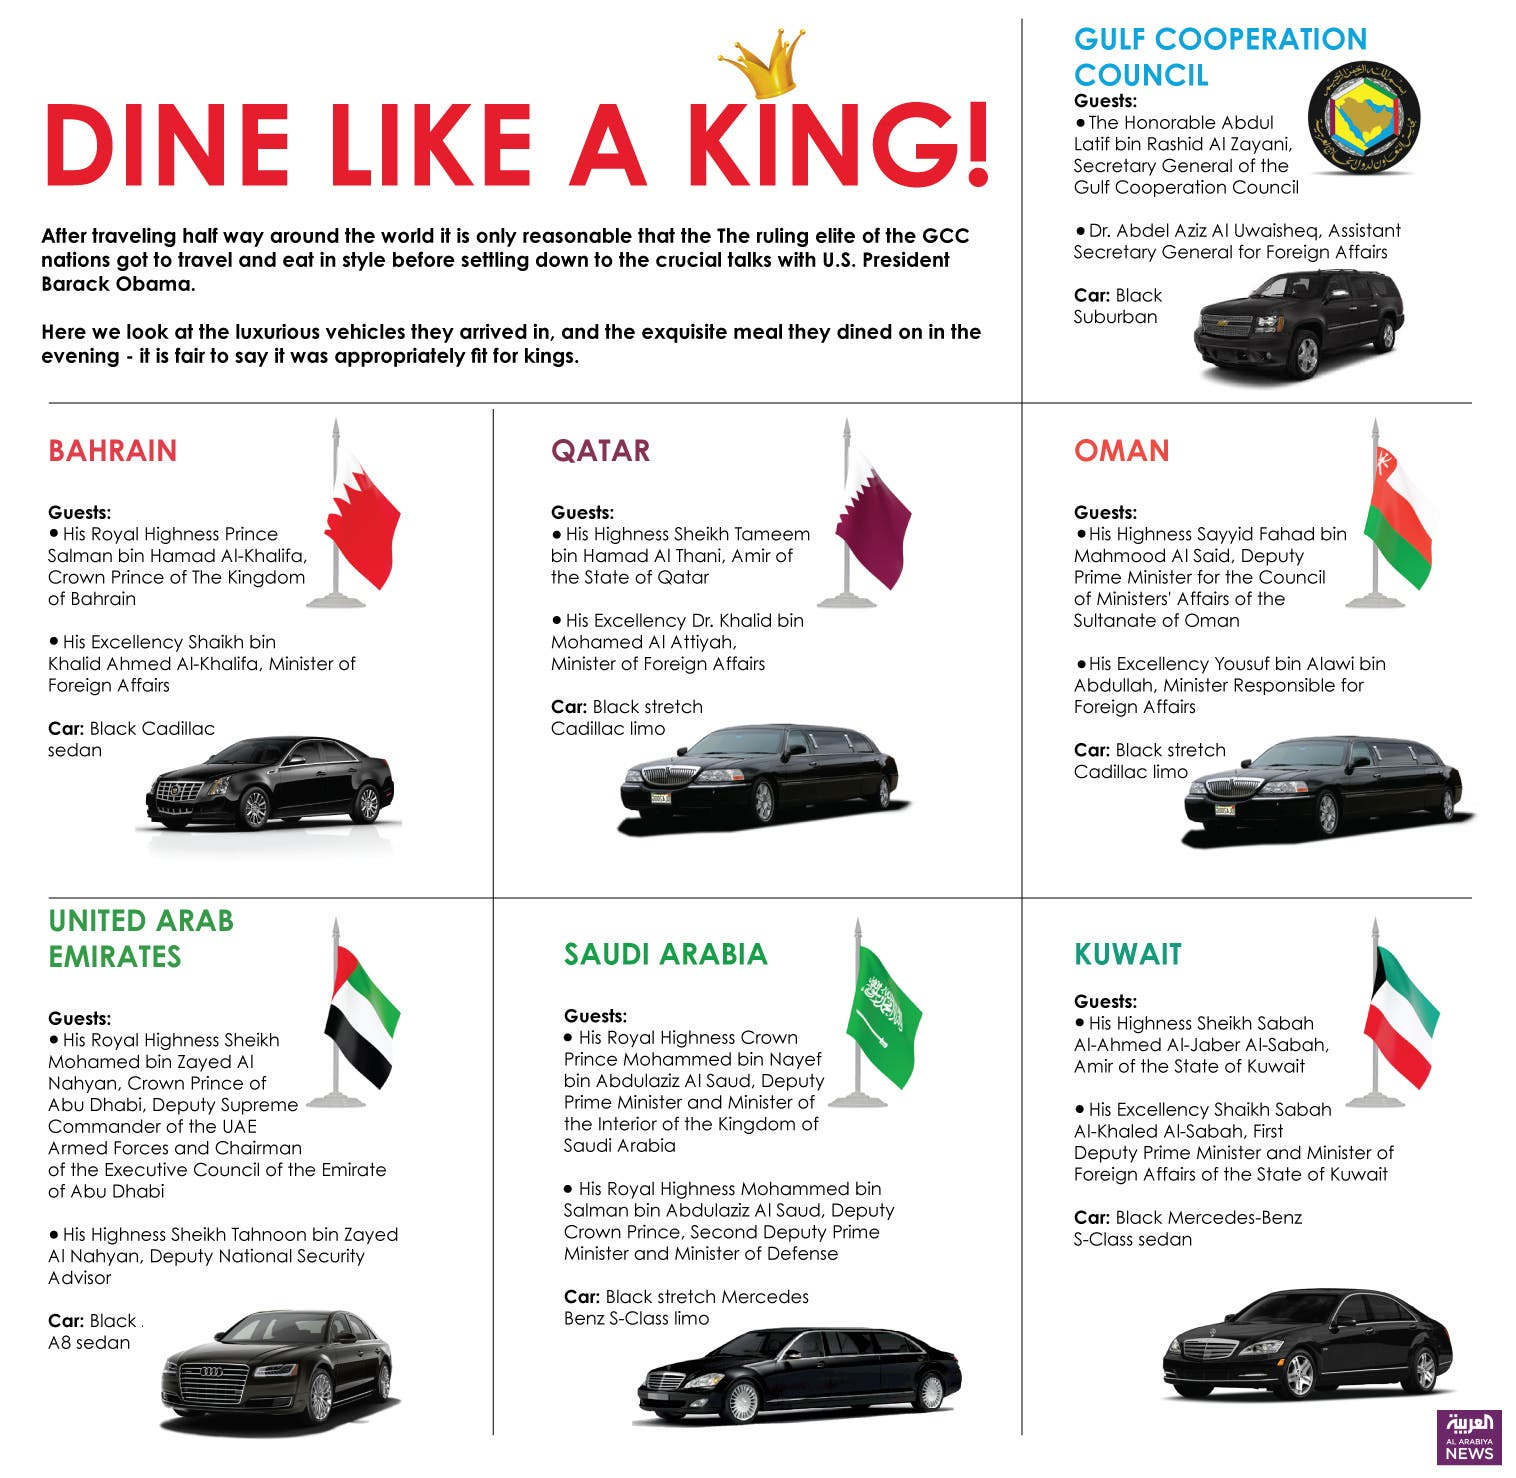 Infographic: Dine like a king!